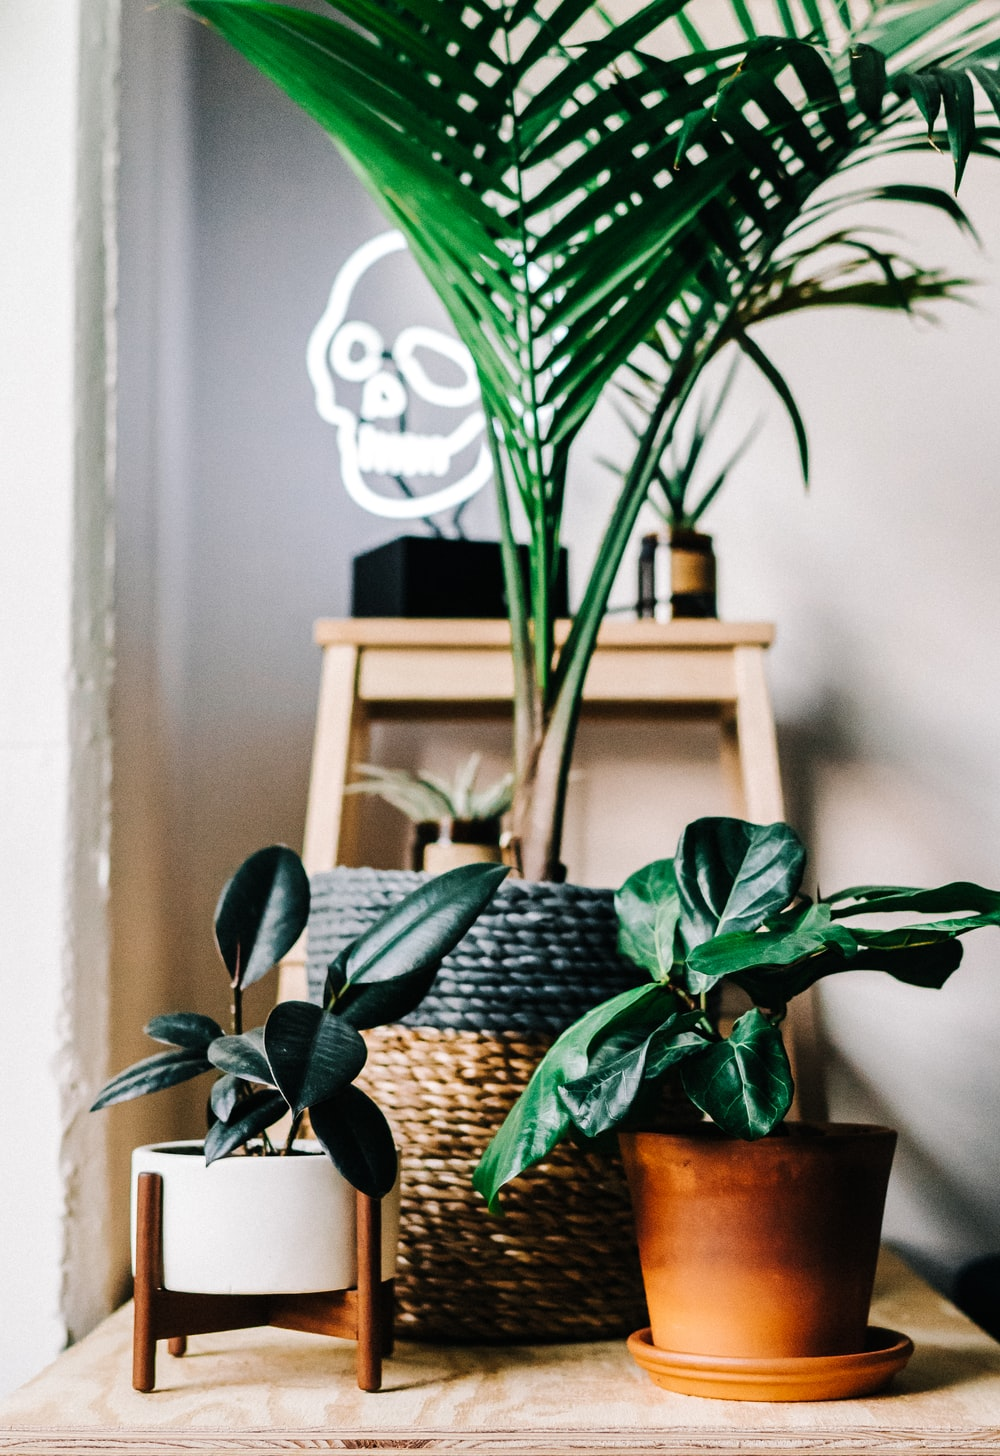 palm plant and rubber fig on brown wooden table